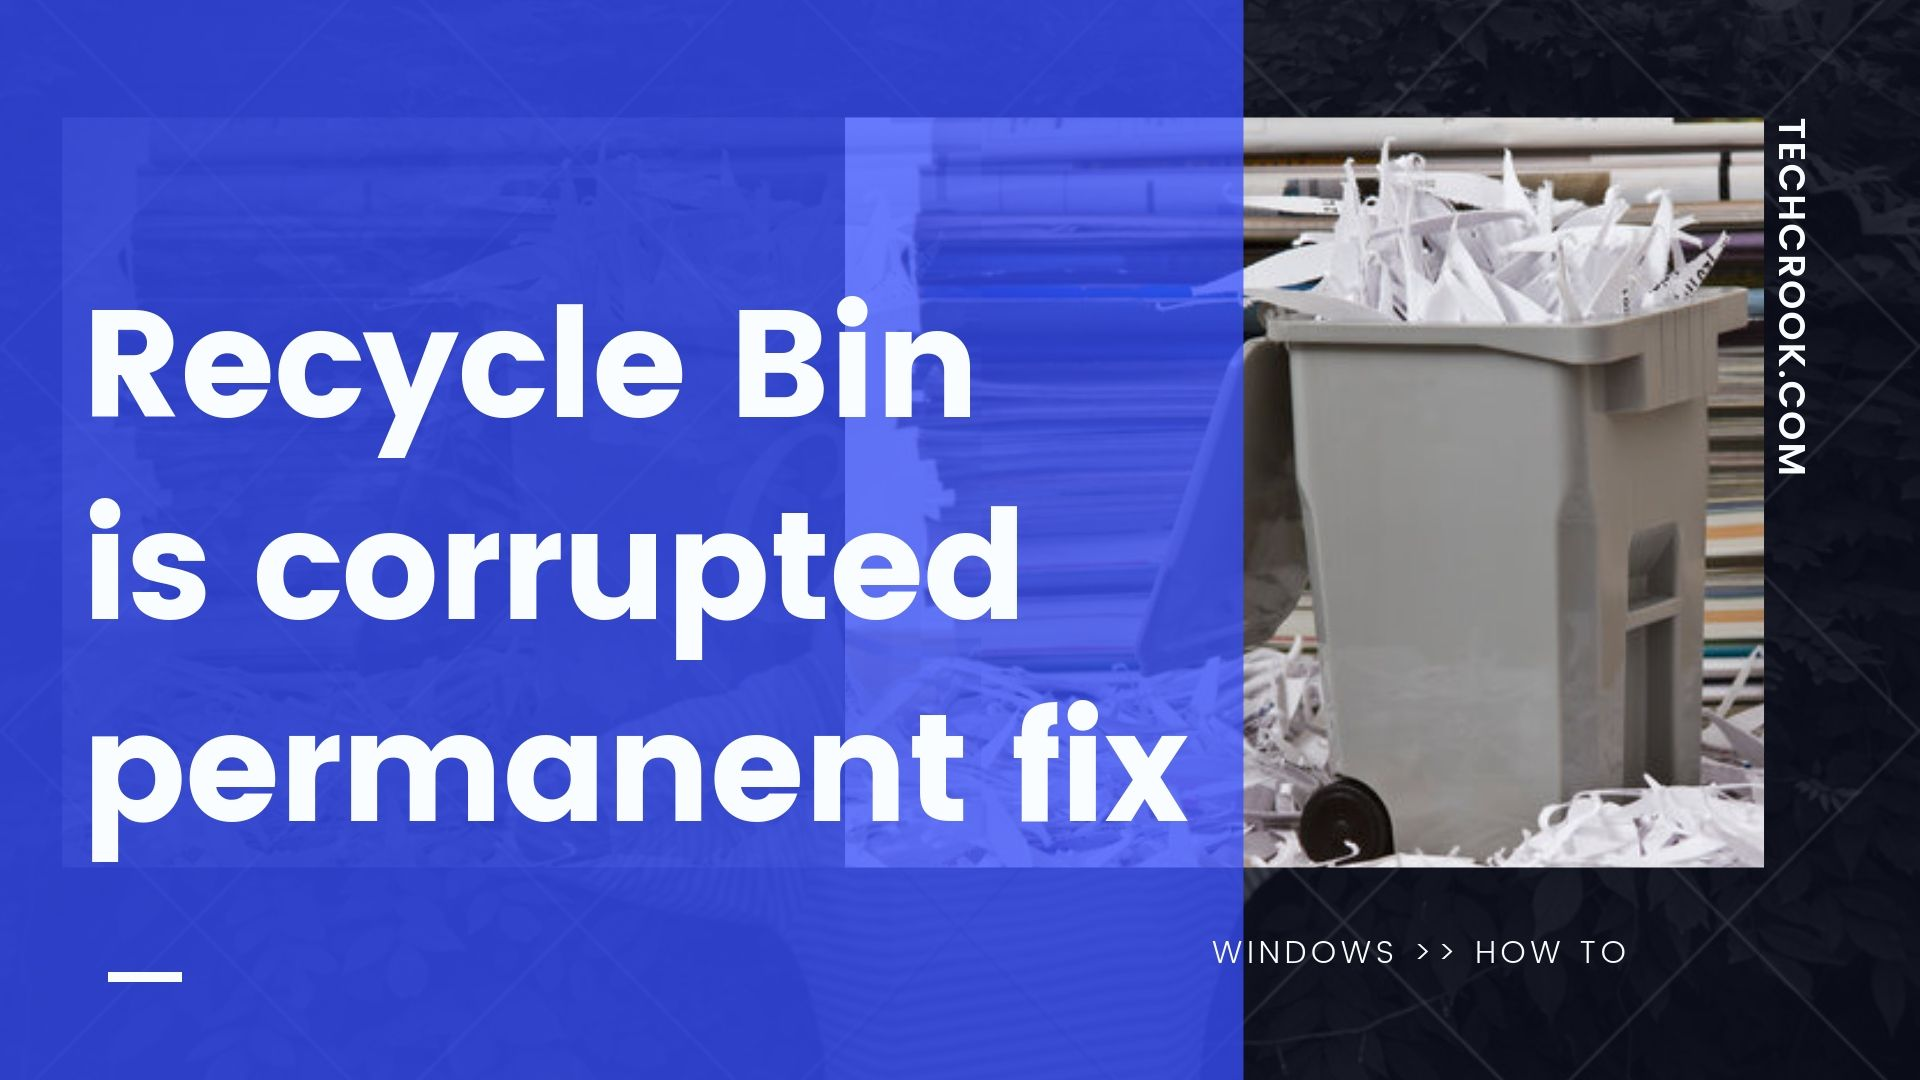 How to Fix Recycle Bin is corrupted issue on Windows 10/8/7